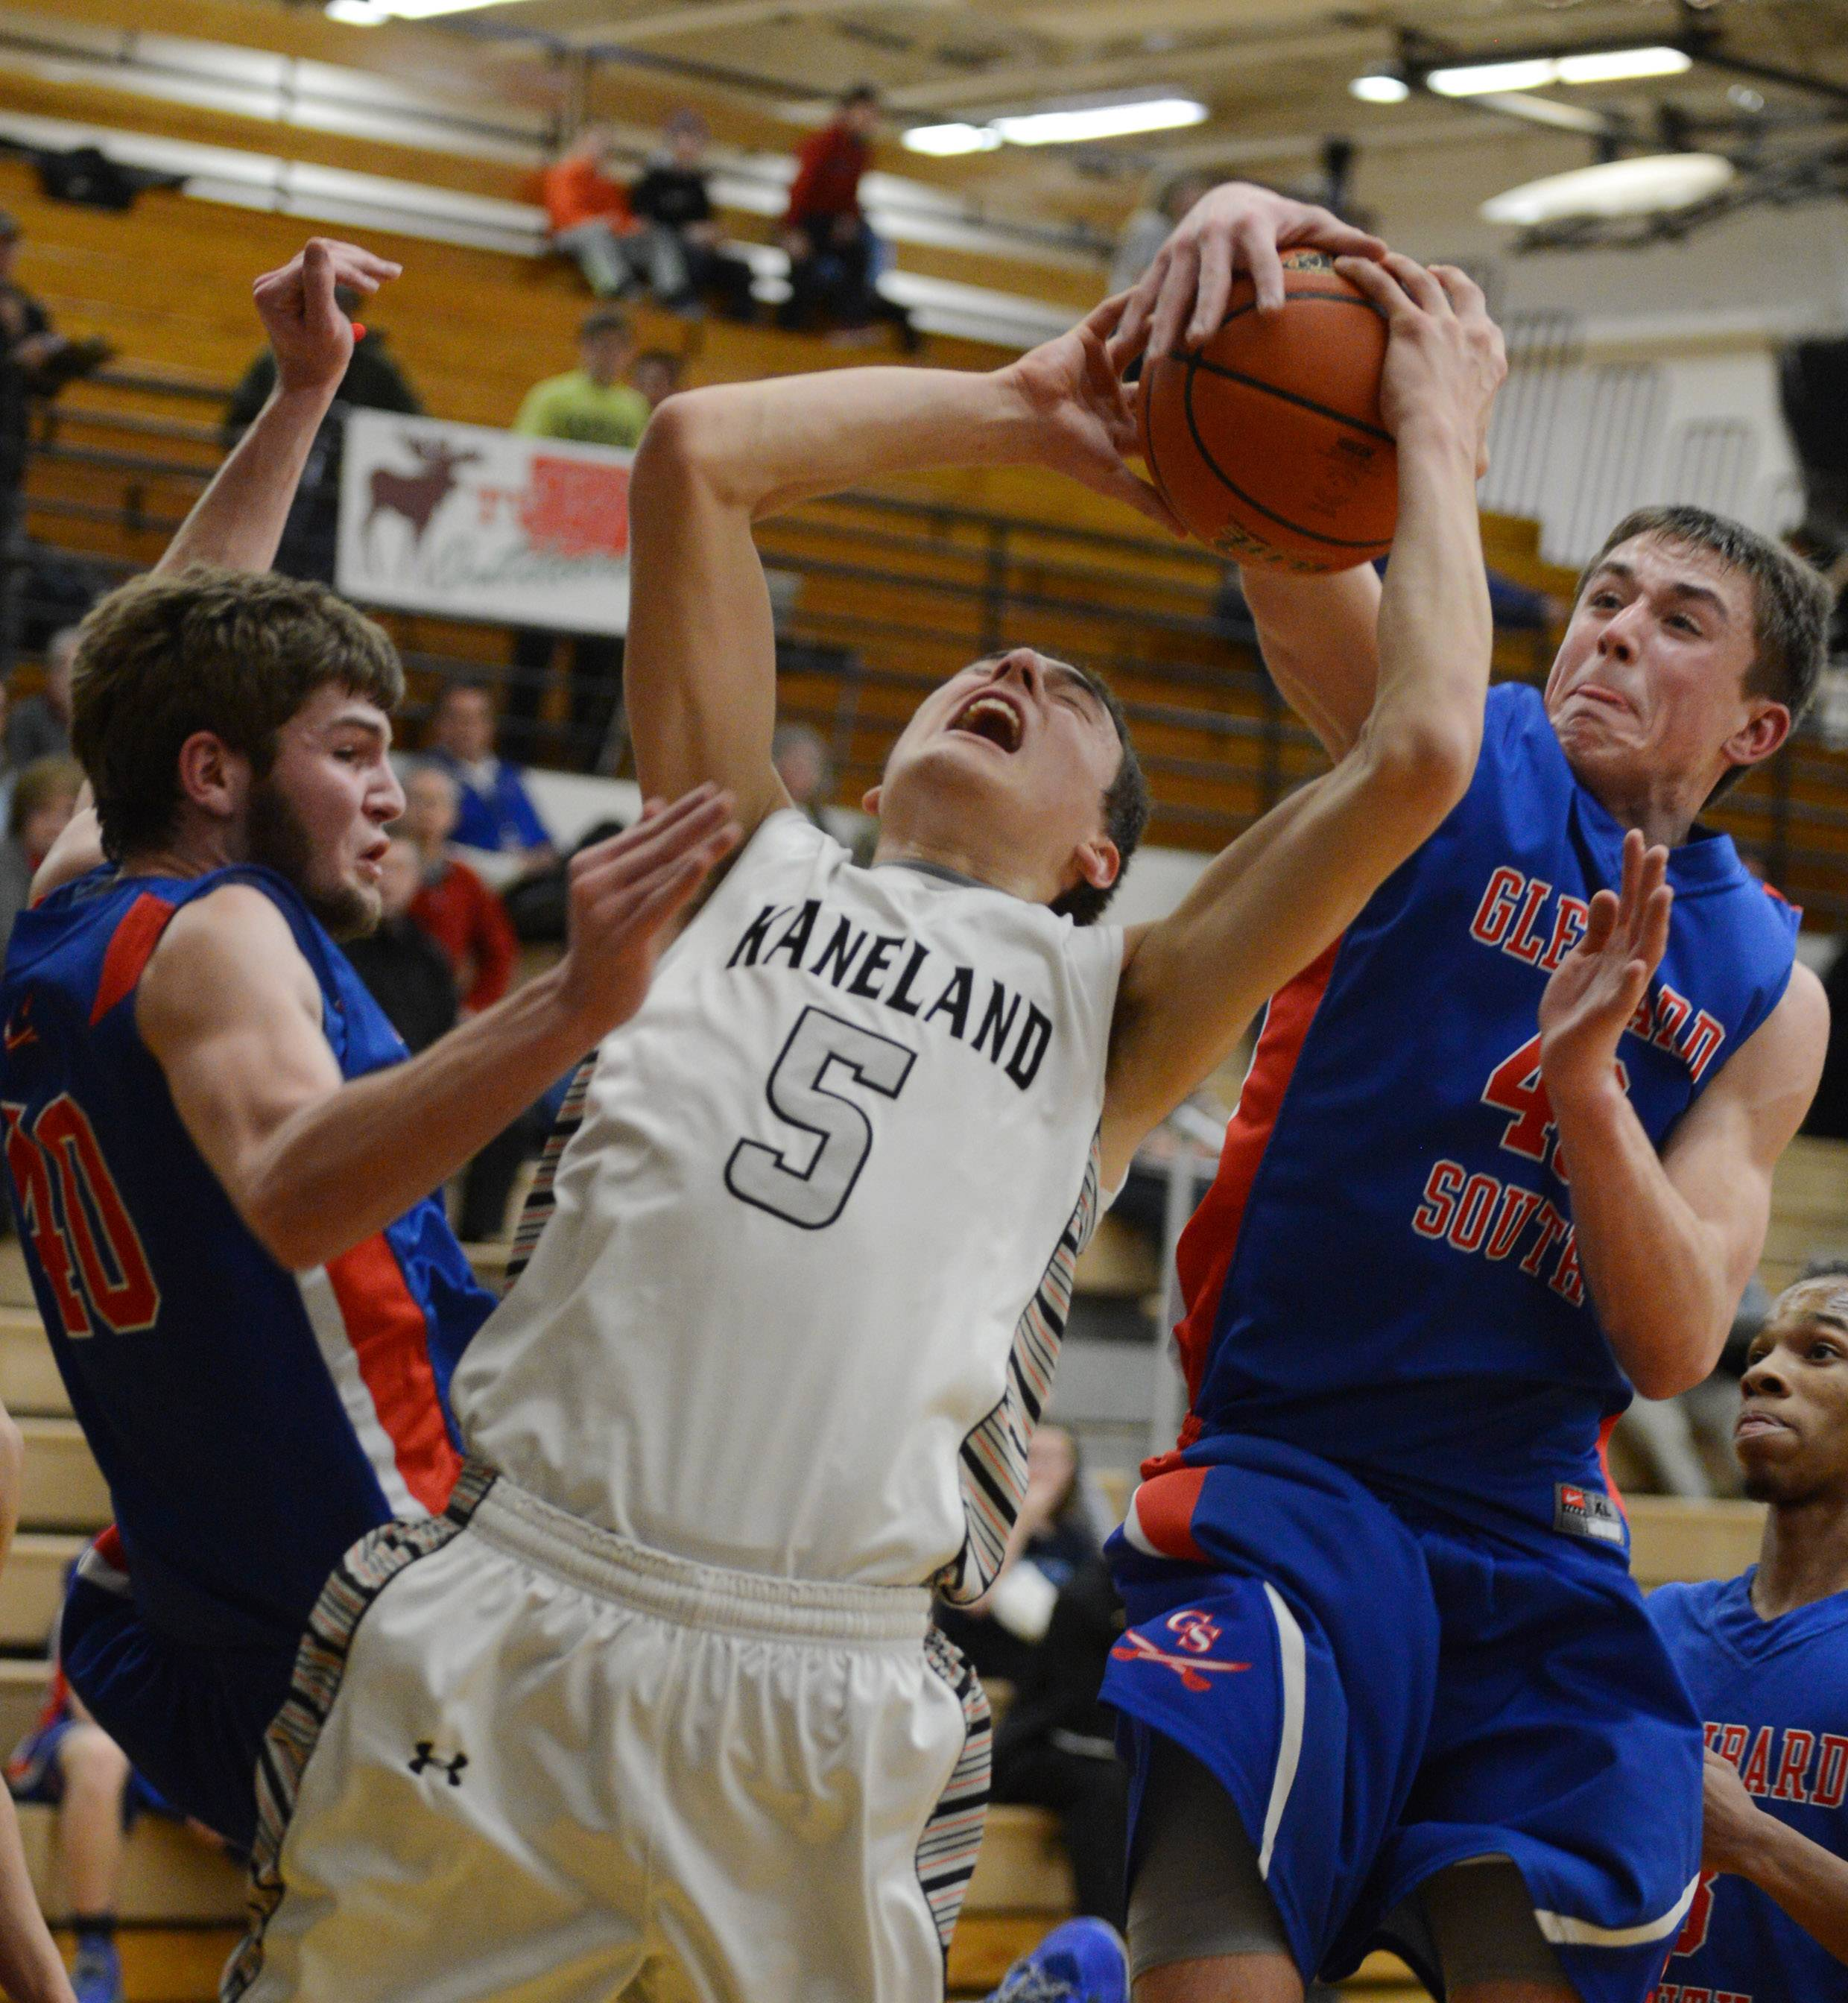 Kaneland's John Pruett is fouled by Glenbard South's Billy Bair.